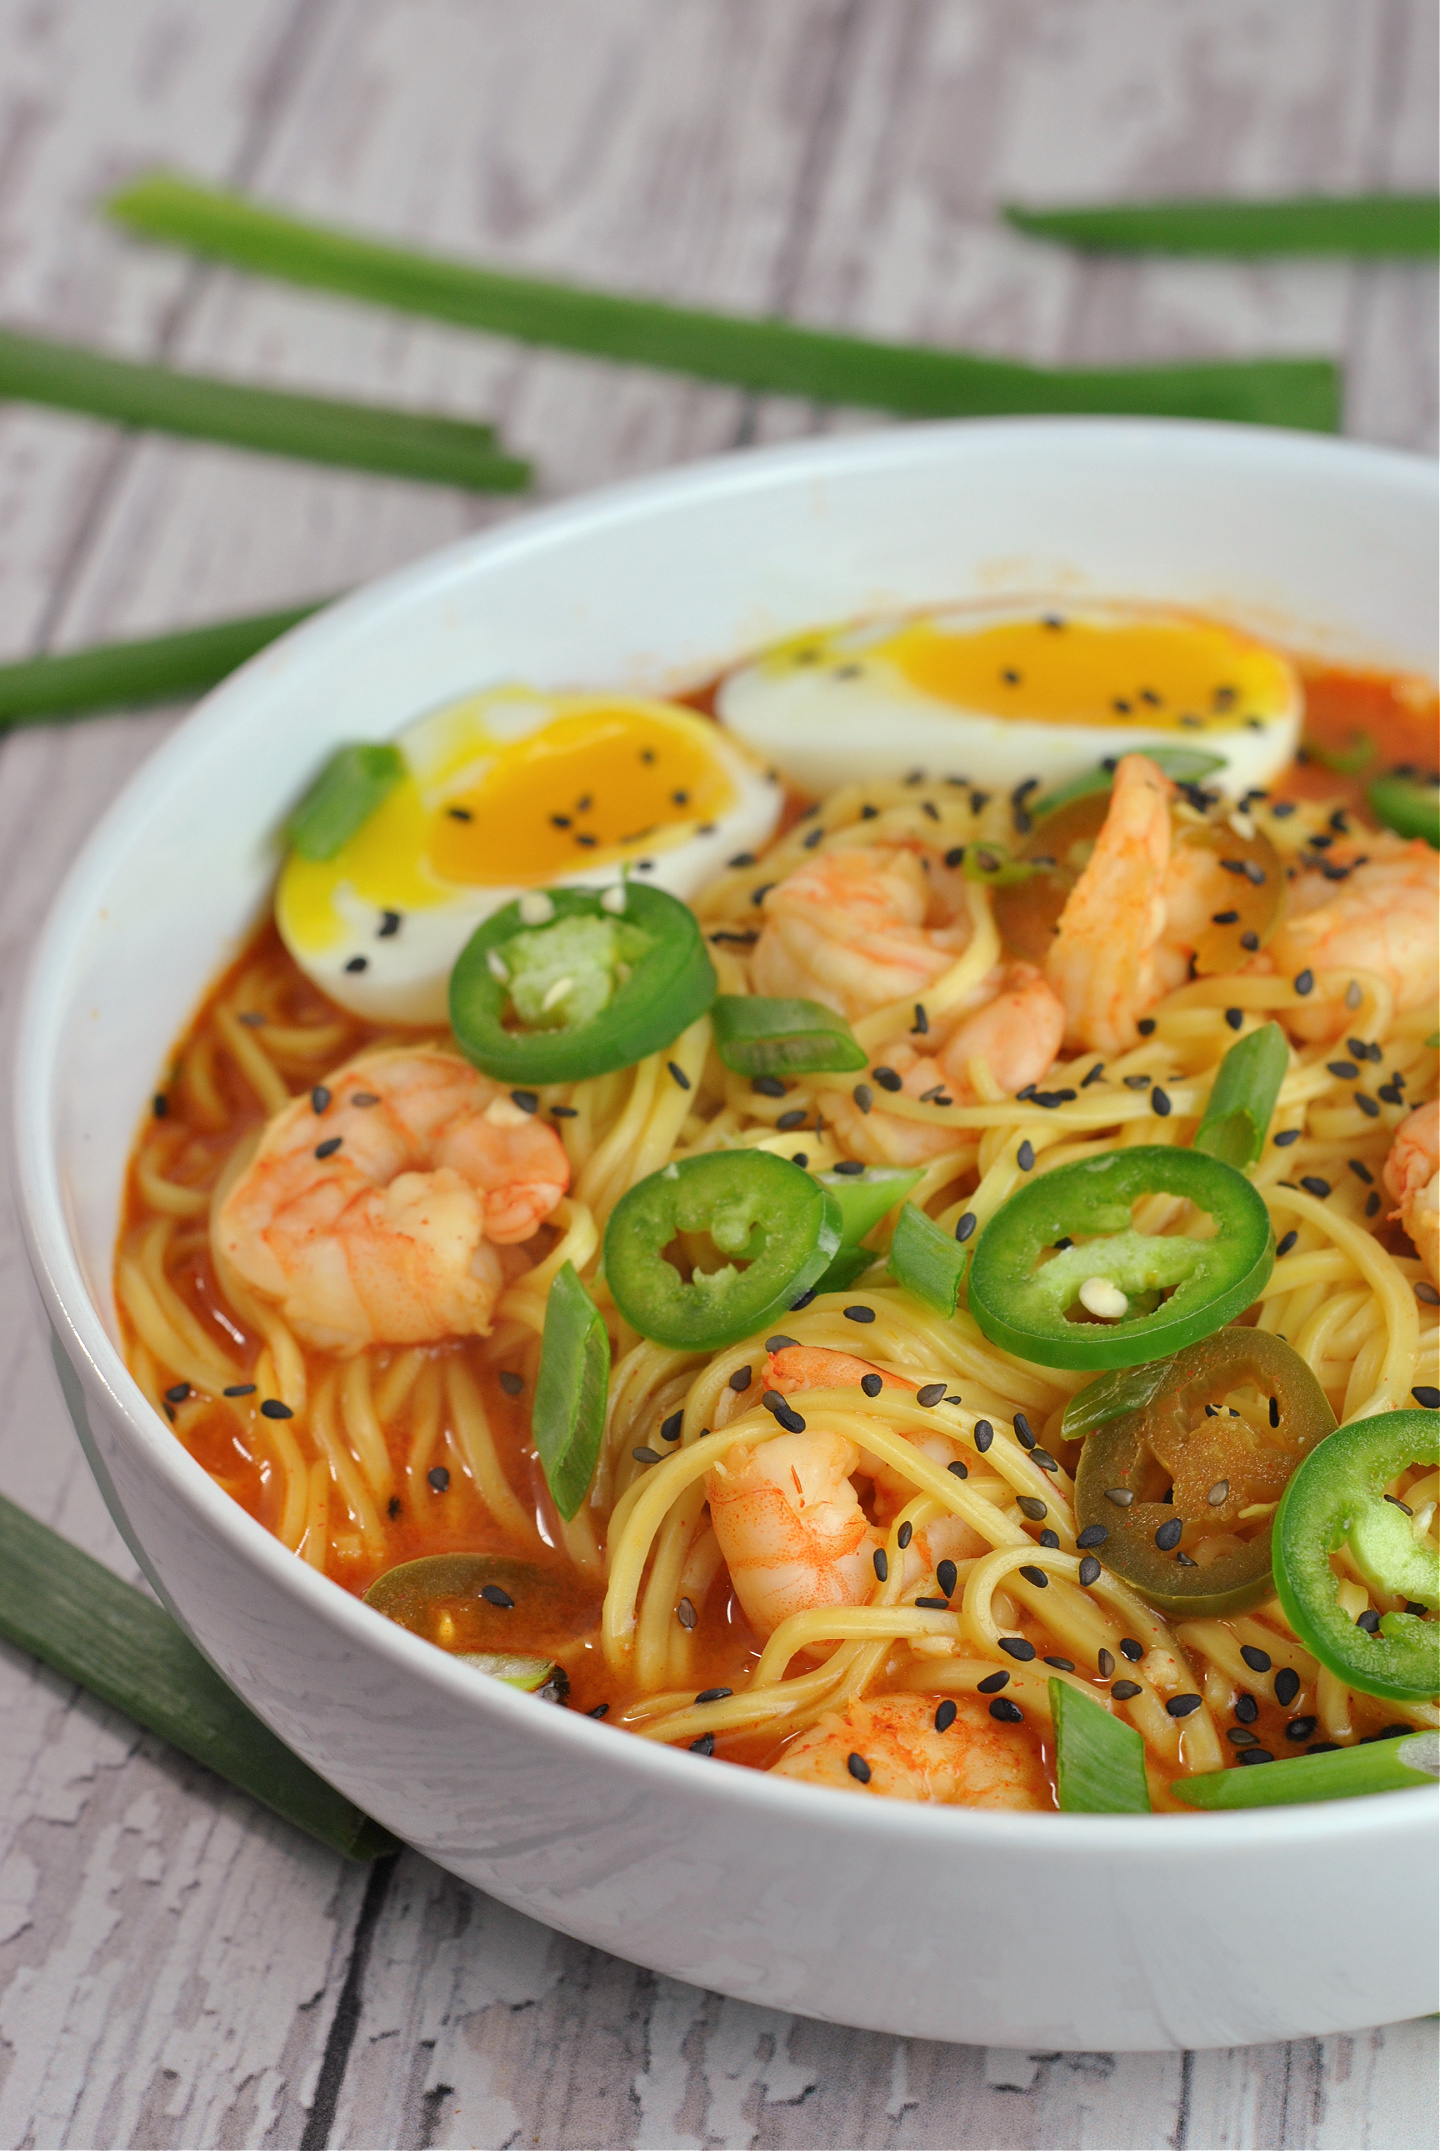 Spicy Ramen Noodles via @preventionrd